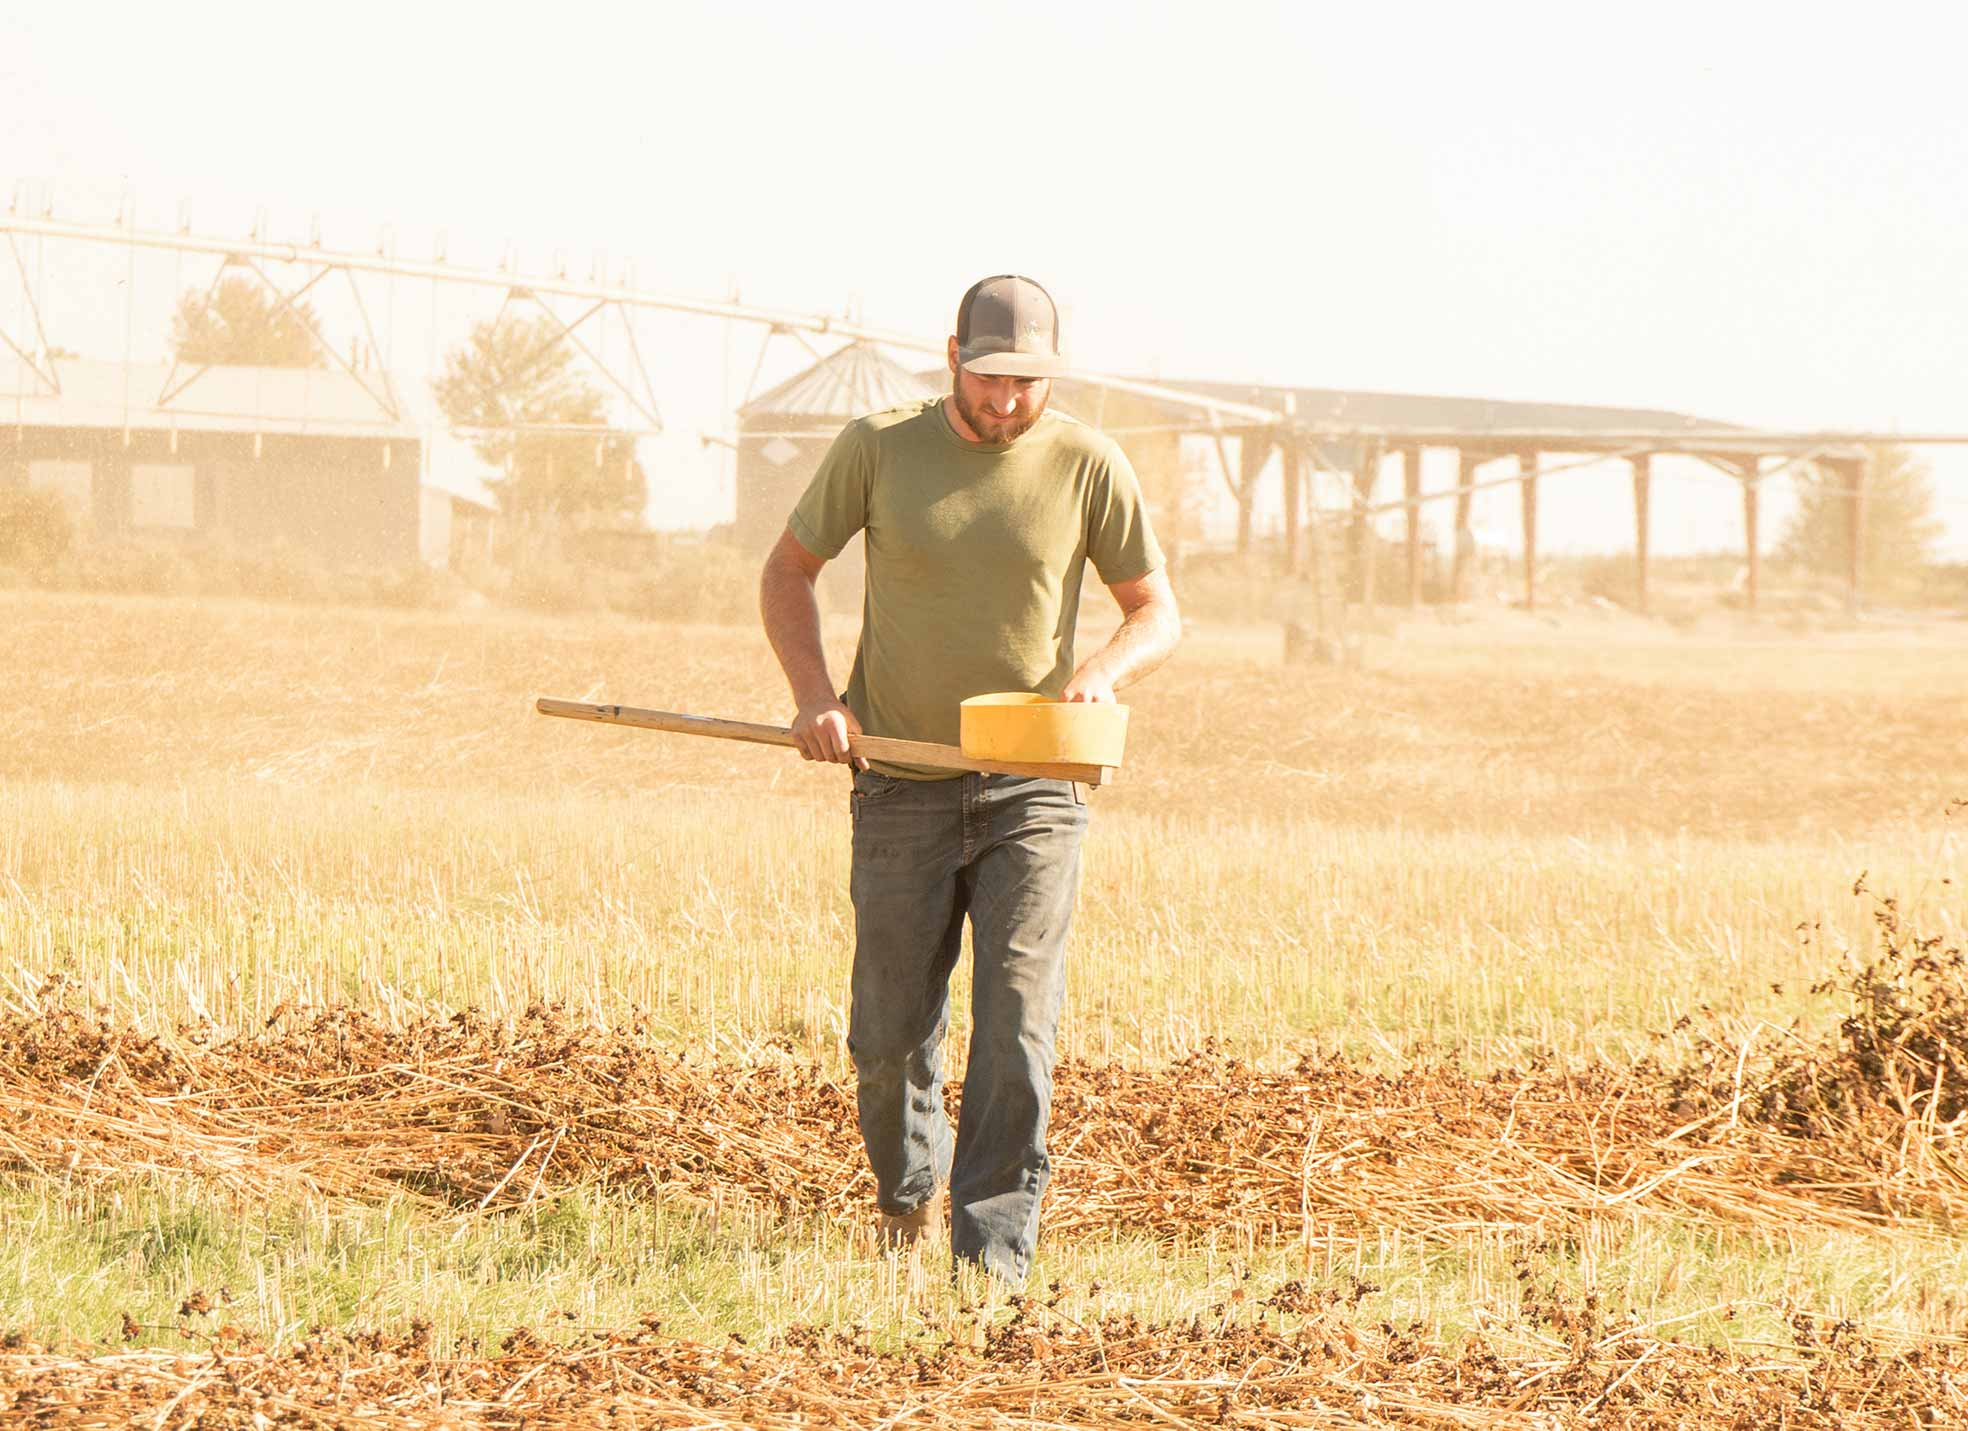 Victory Ag and Victory Farms team member checking grain in the field.